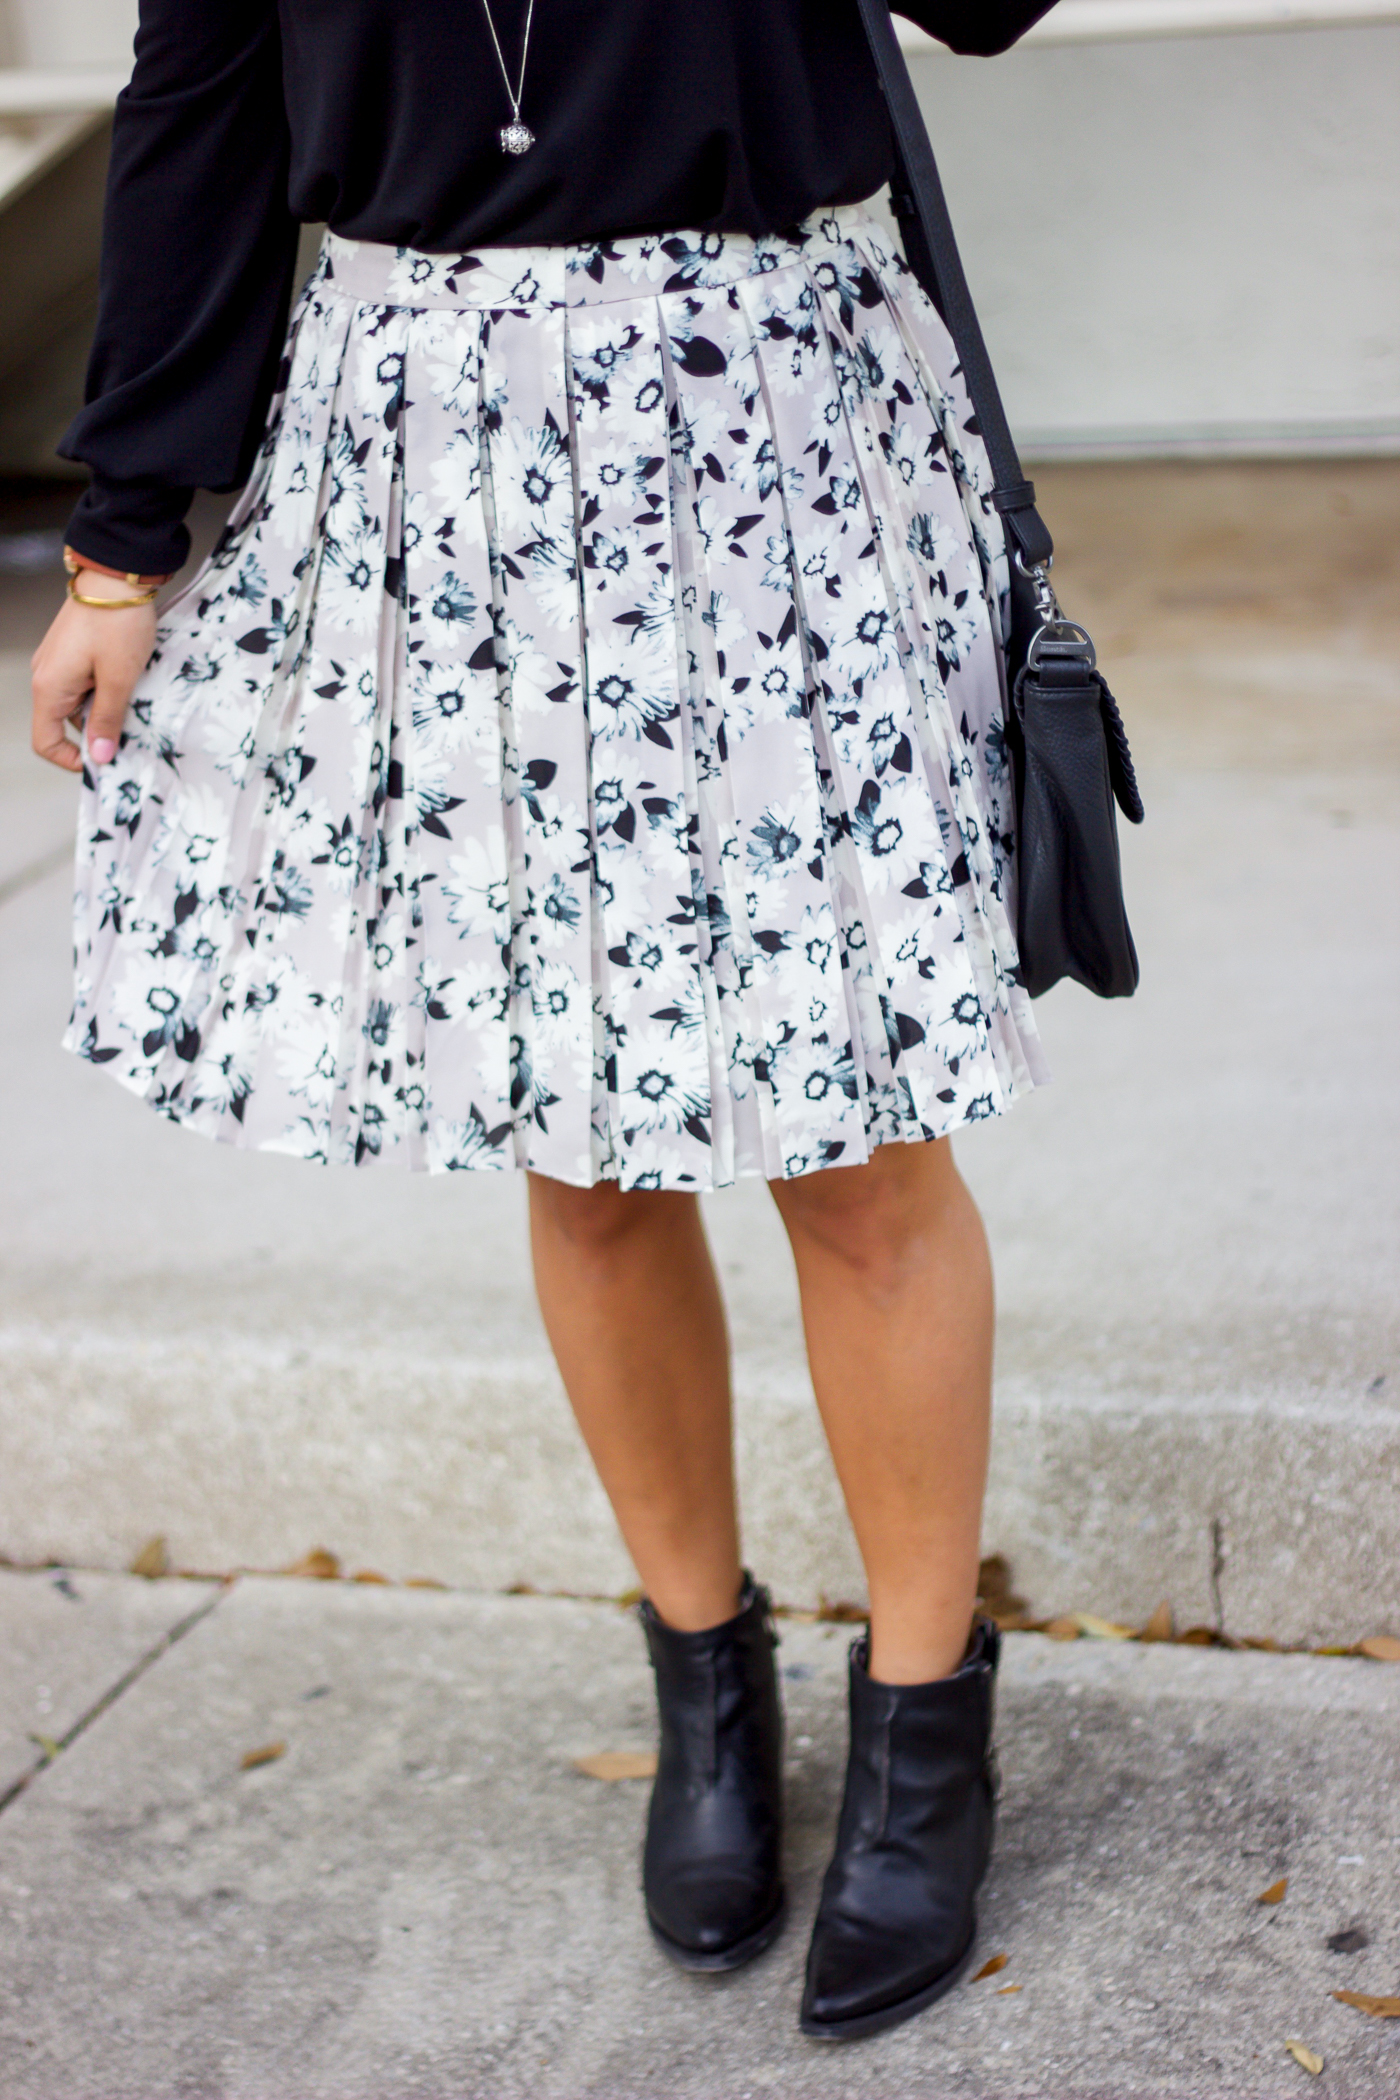 Toronto fashion blogger is wearing a pretty floral skirt from Banana Republic with black leather Frye ankle booties